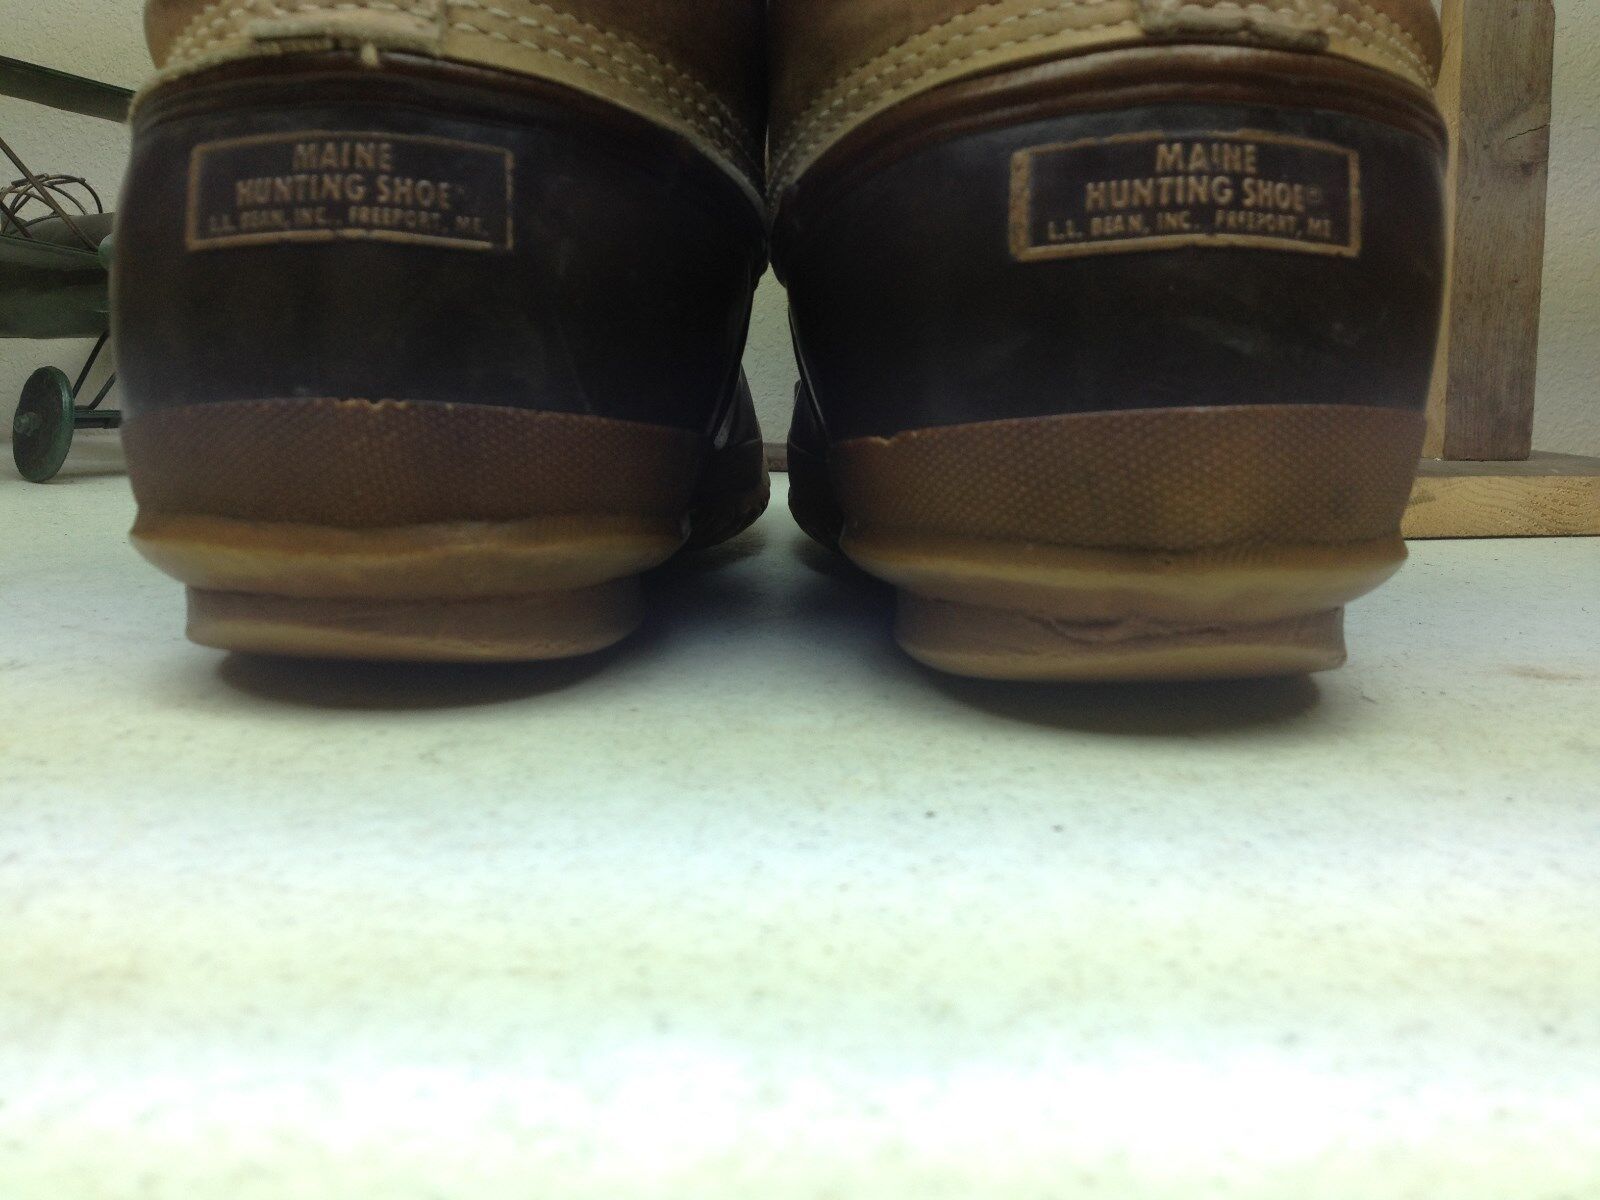 BEAN BOOTS VINTAGE L.L. BEAN USA VINTAGE BOOTS DISTRESSED DUCK HUNTING WINTER SNOW BOOTS 11 EE 3f2212